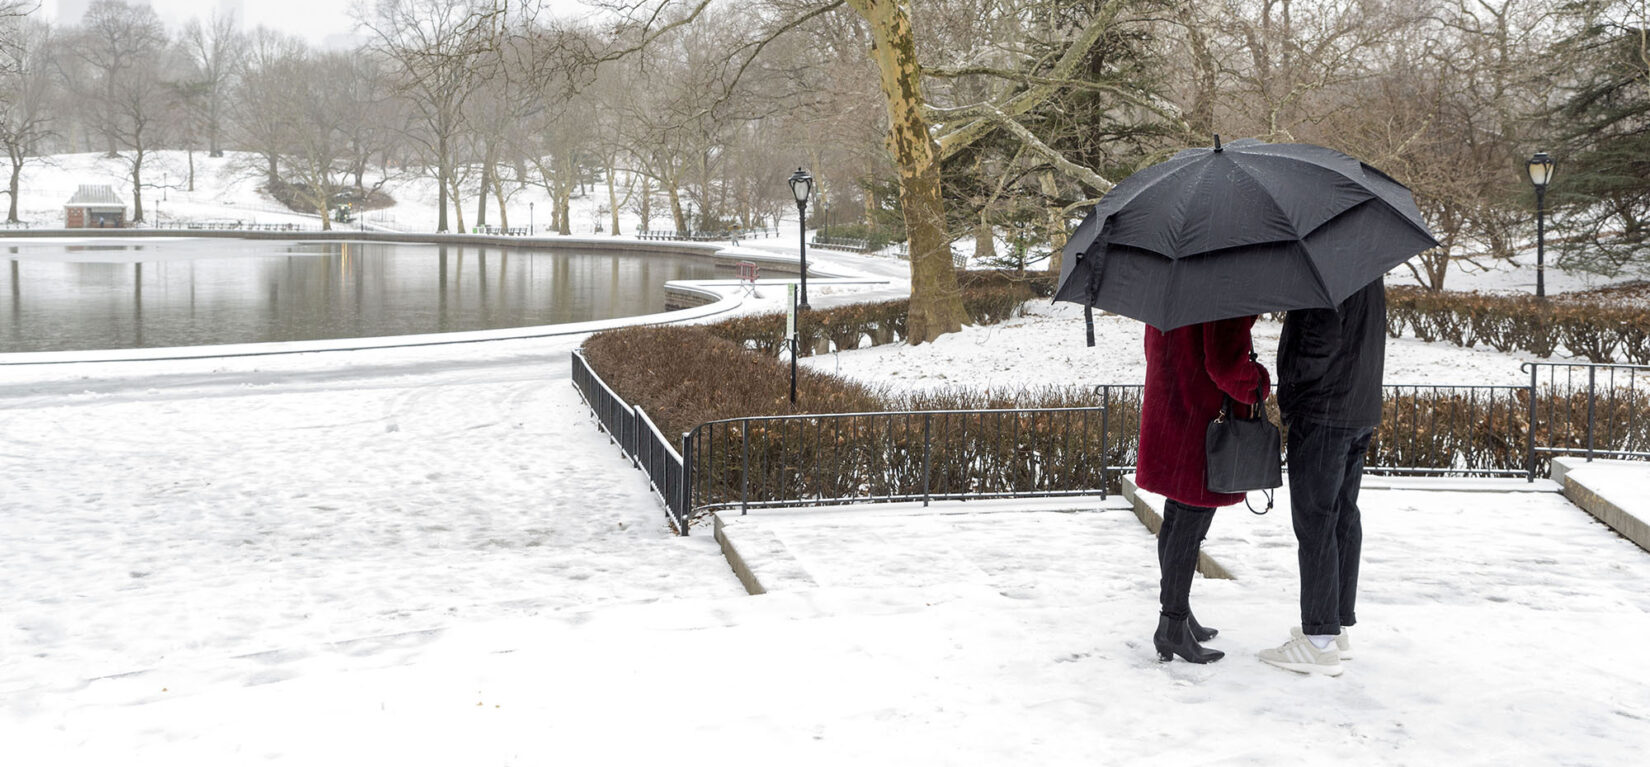 A couple huddle under an umbrella with the snow-covered Park surrounding Conservatory Water behind them